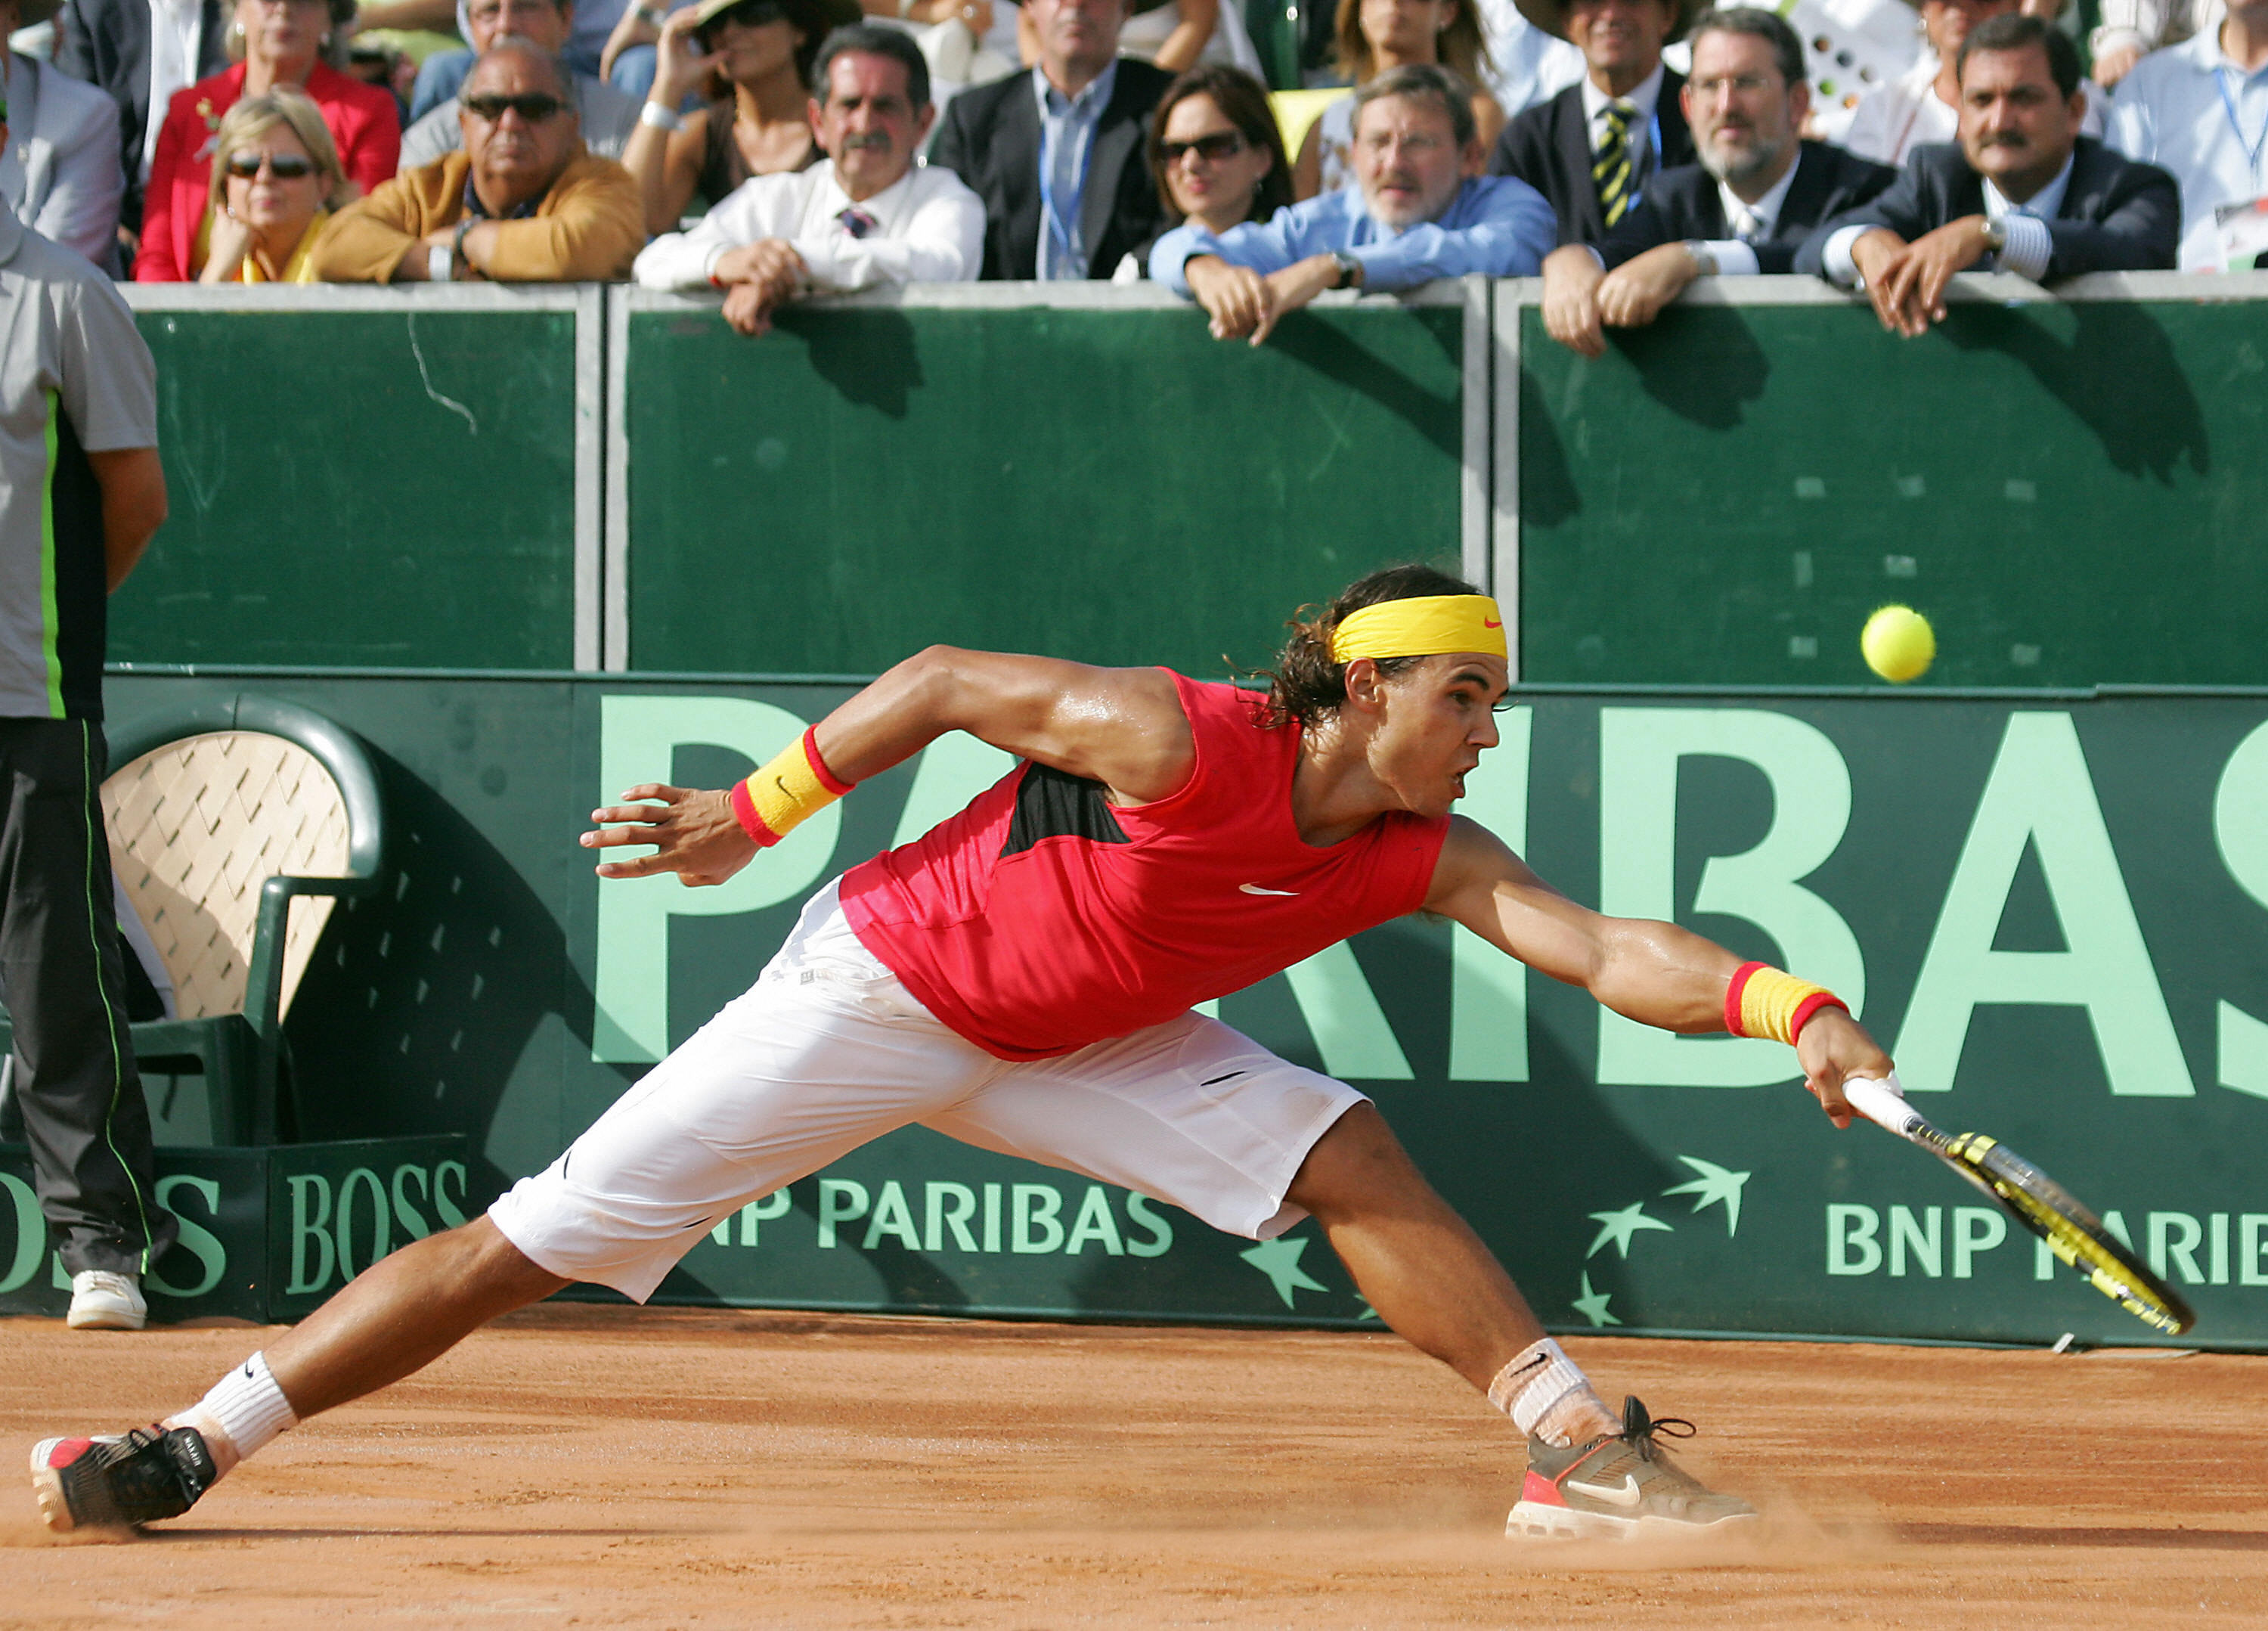 Nadal embodies his country's colors with this red and yellow ensemble as he represented Spain at the Davis Cup.